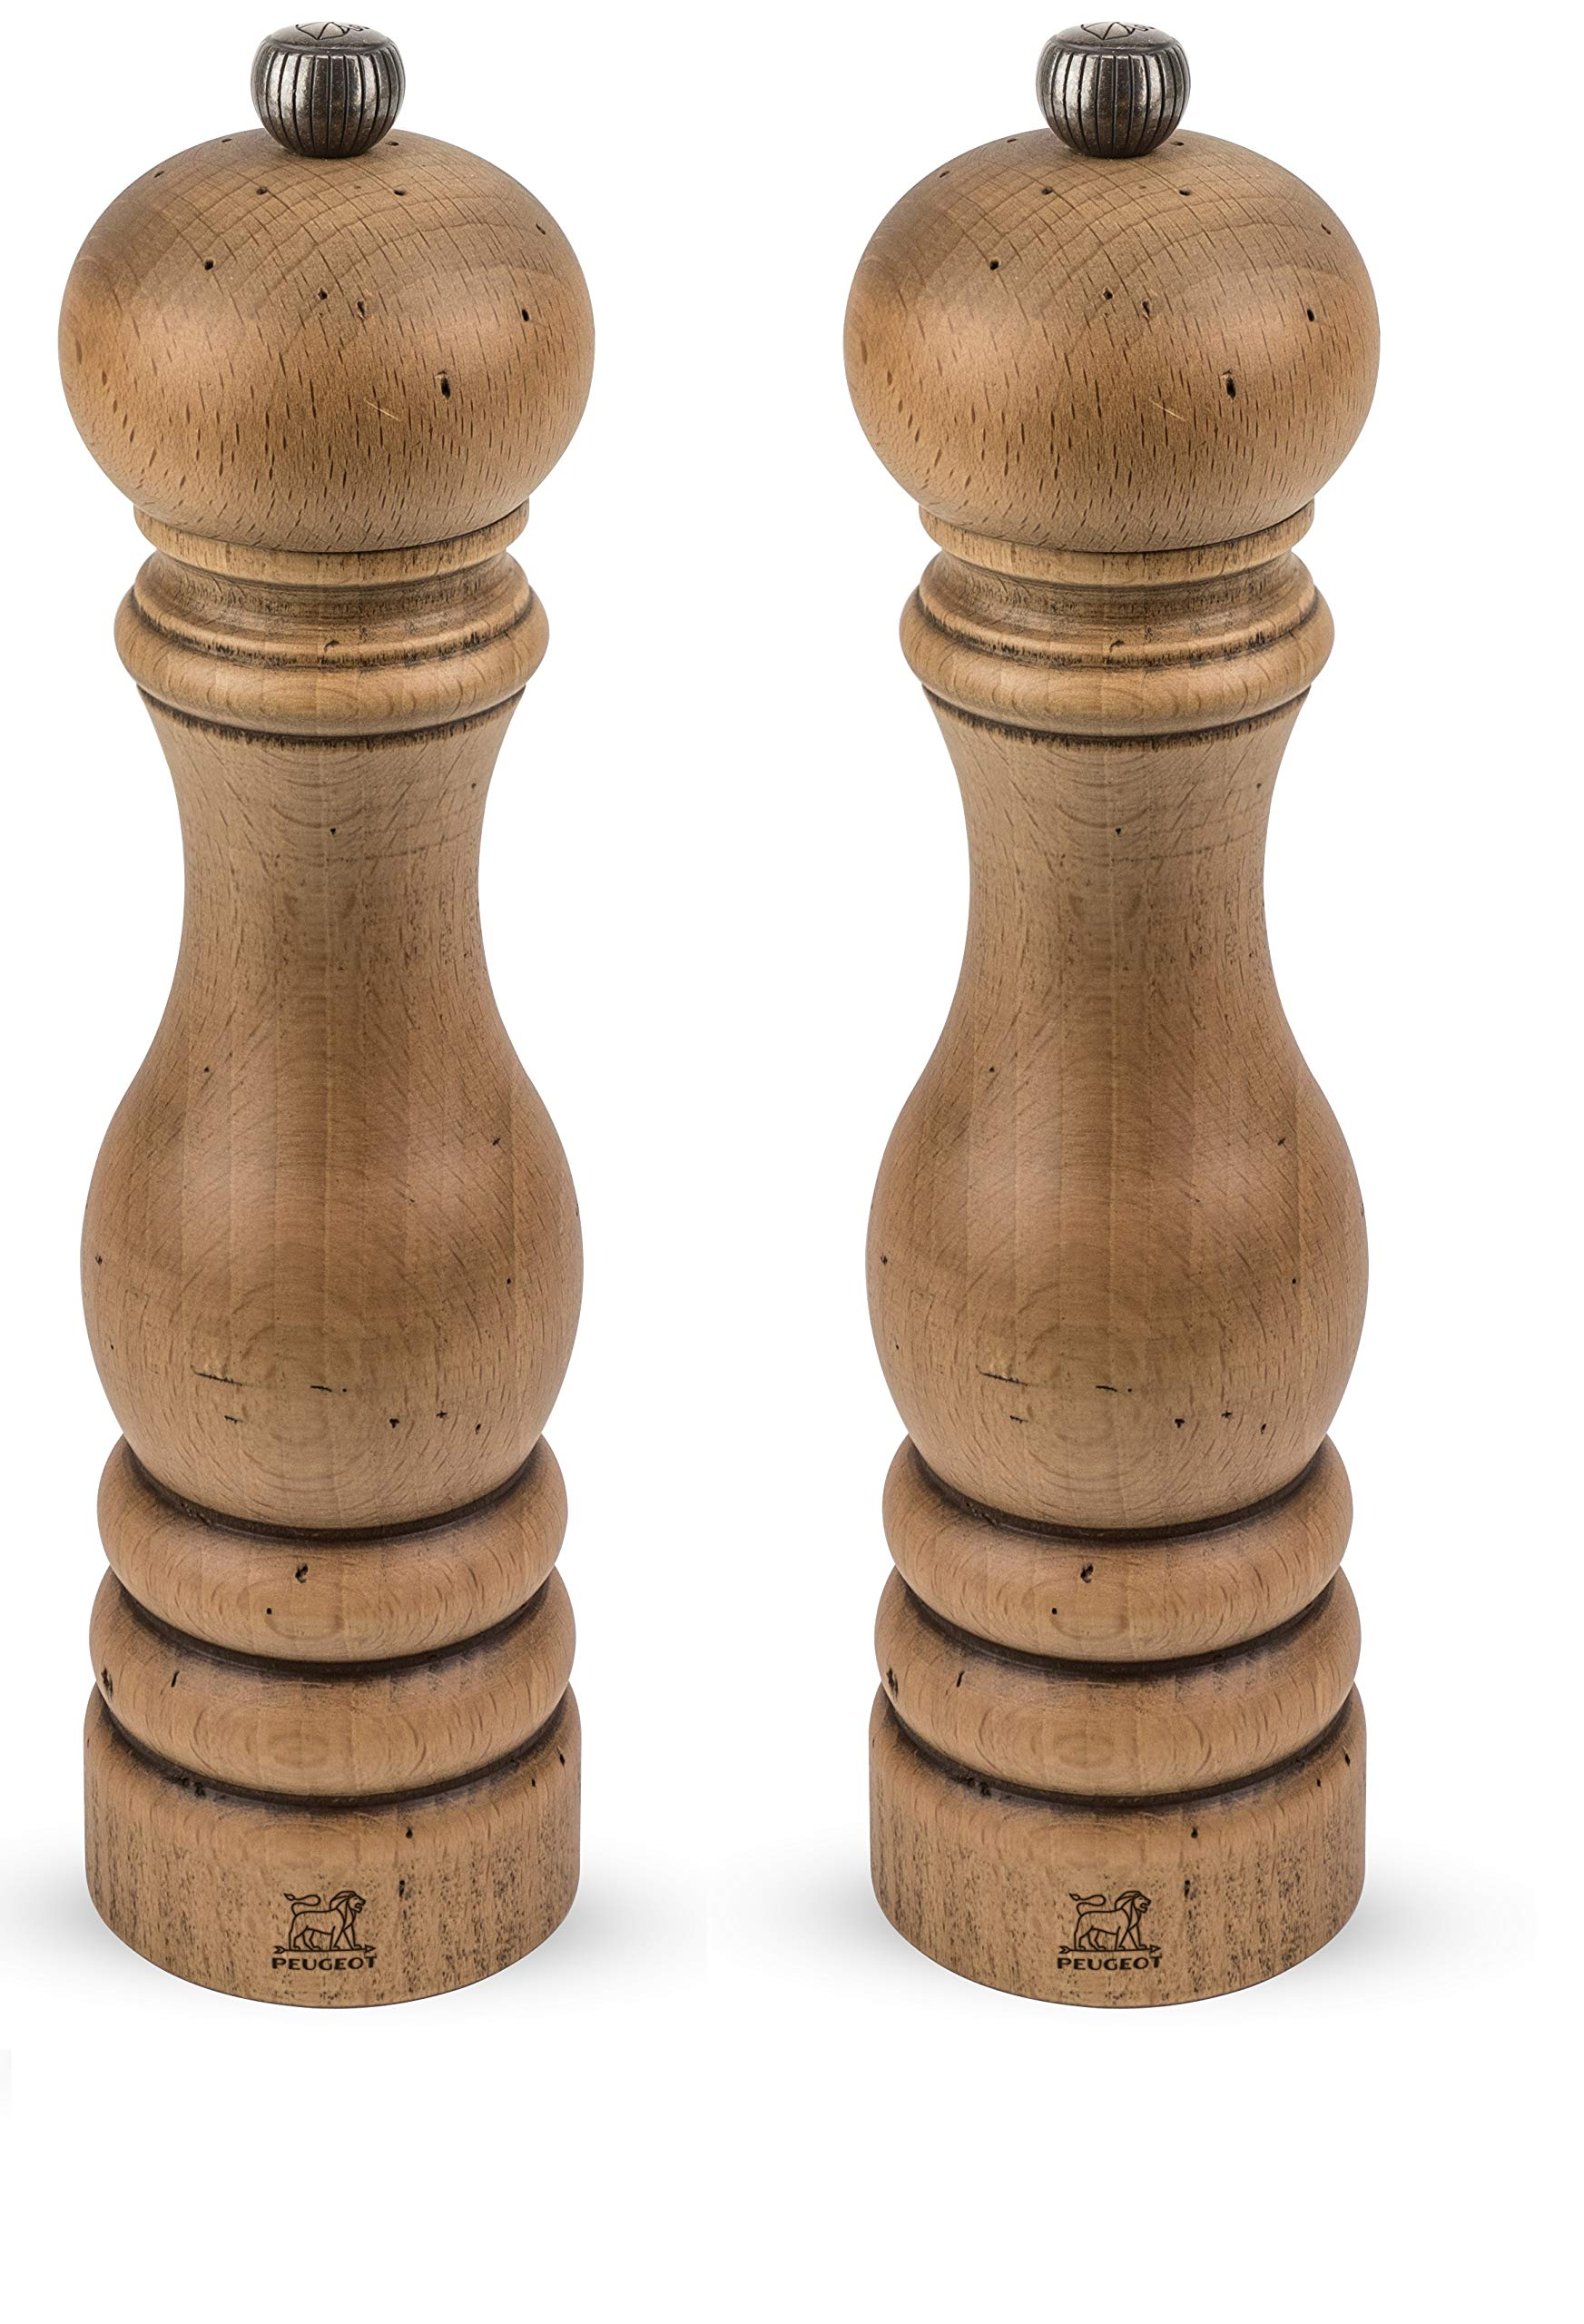 Peugeot Paris Antique Salt And Pepper Mill Set 8 3/4'' by Peugeot